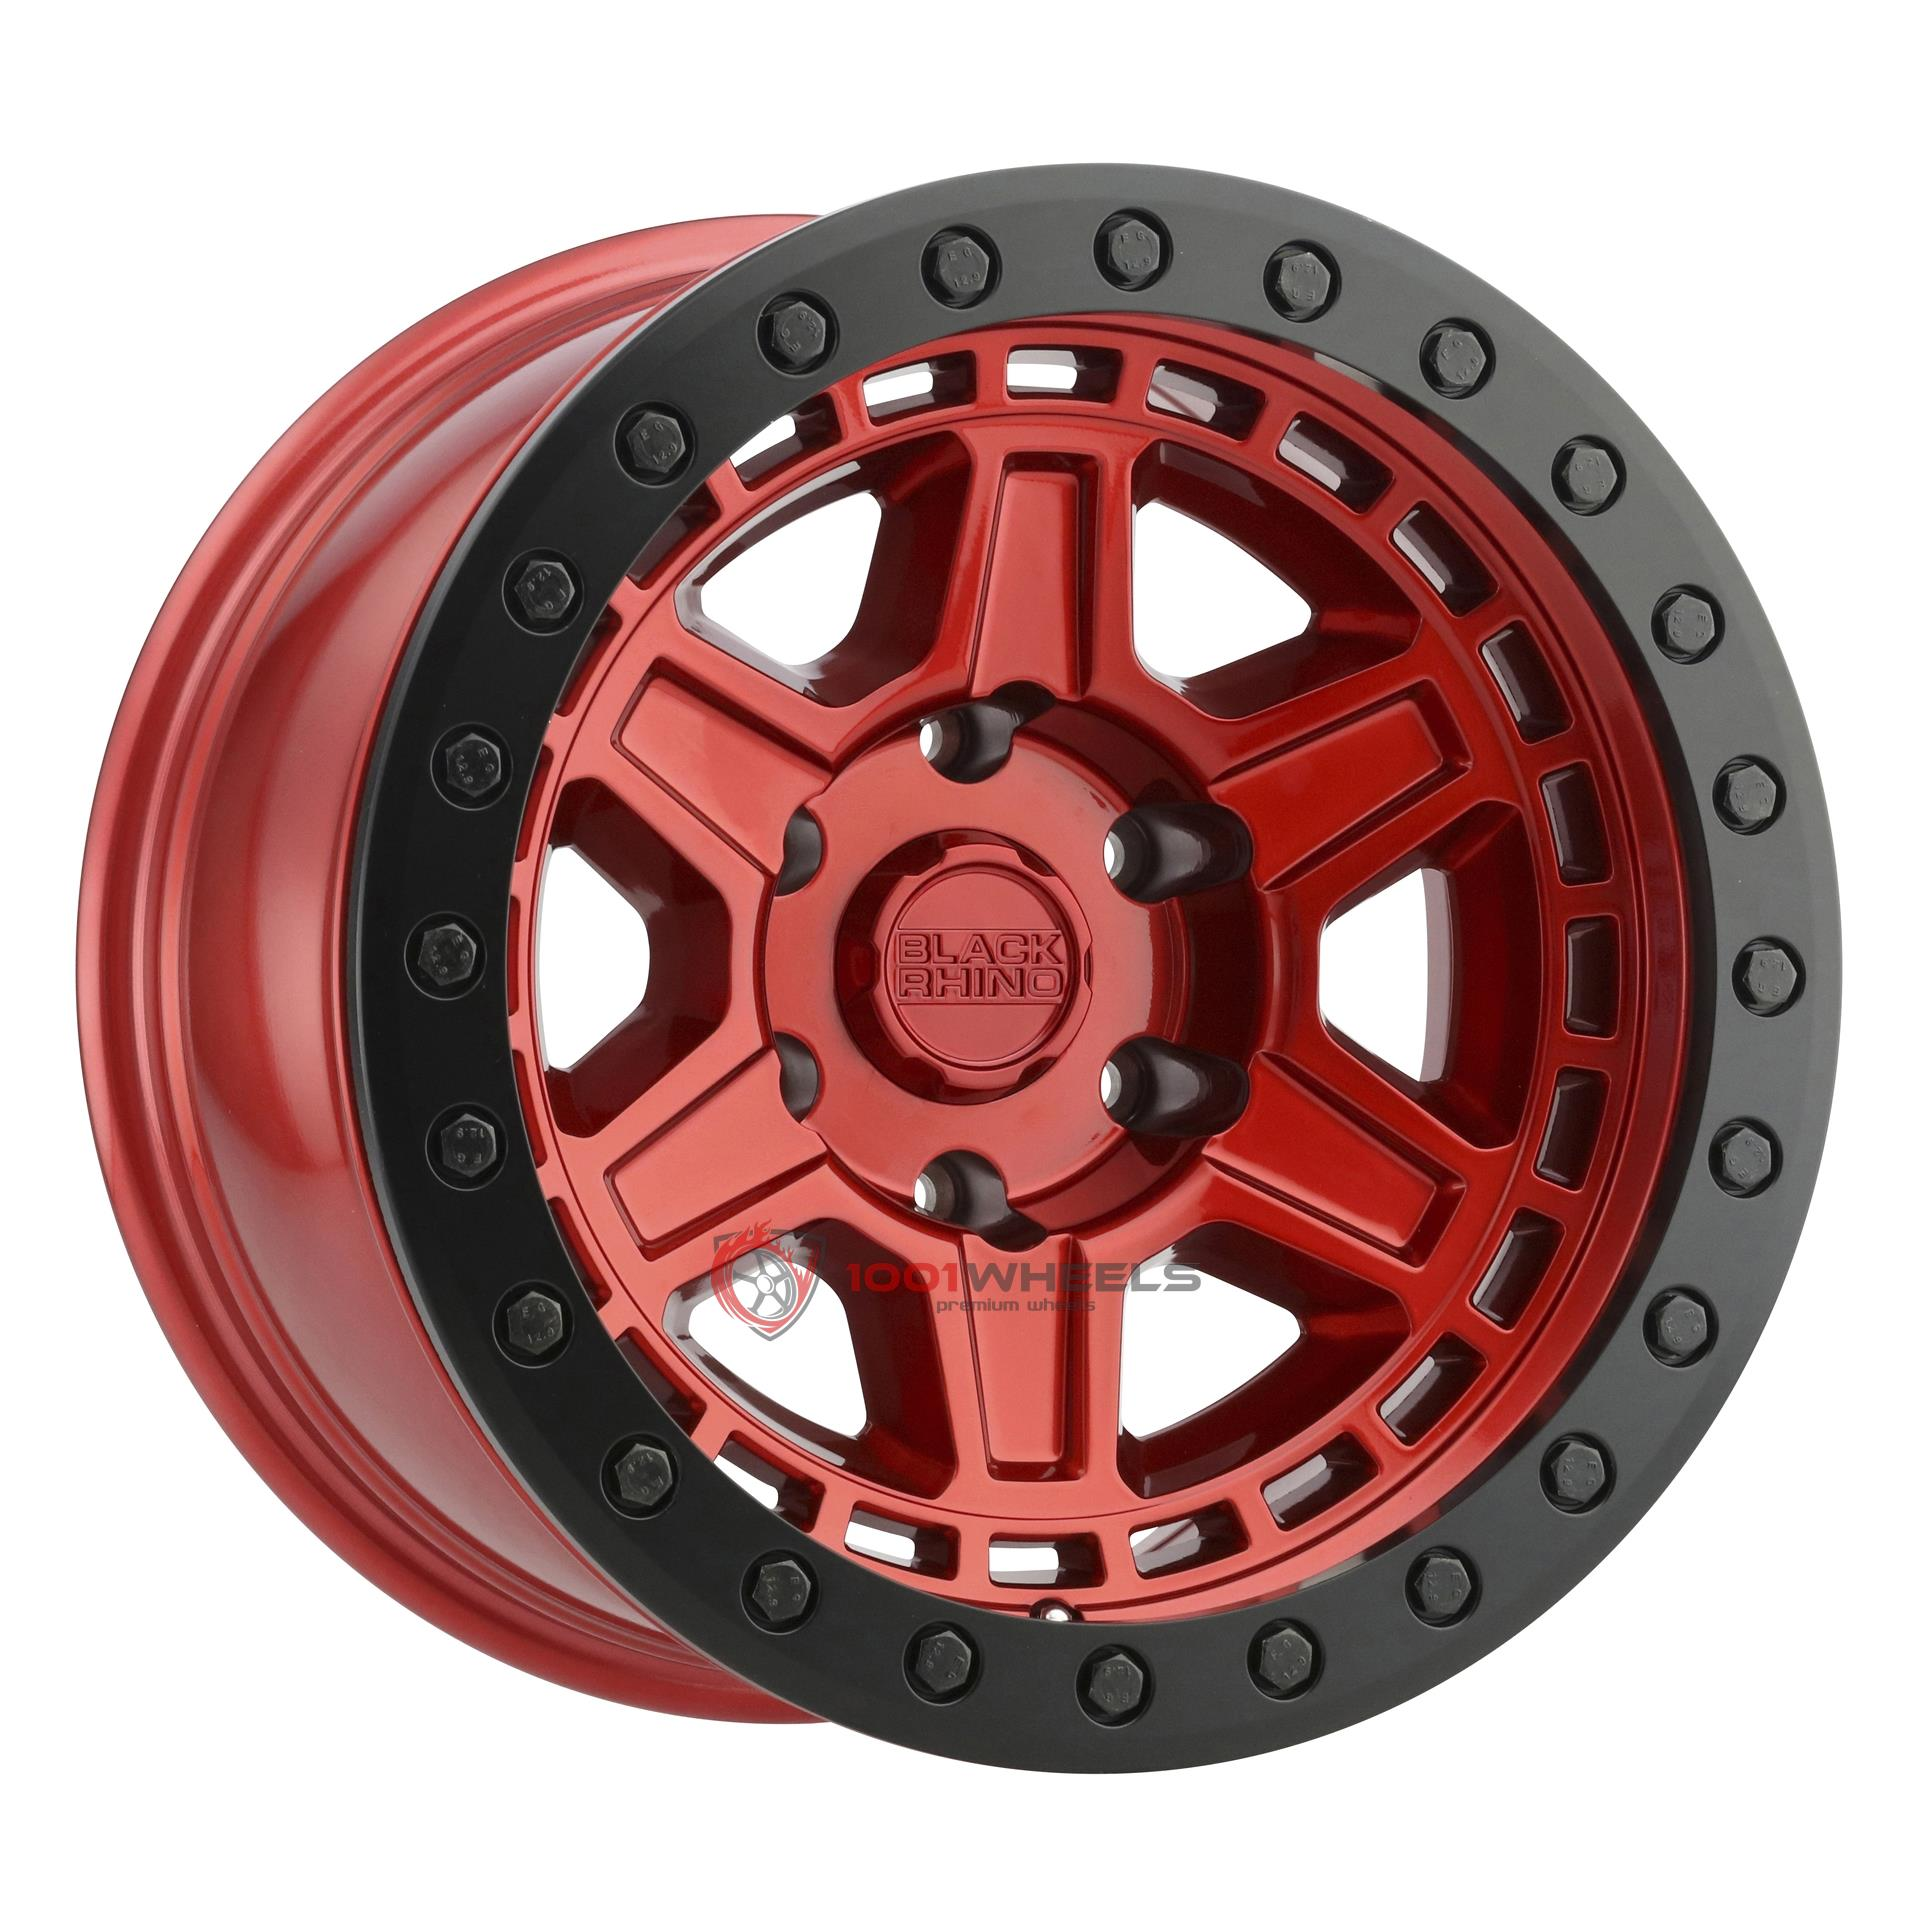 BLACK RHINO RENO BEADLOCK candy-red-w-black-ring-and-black-bolts